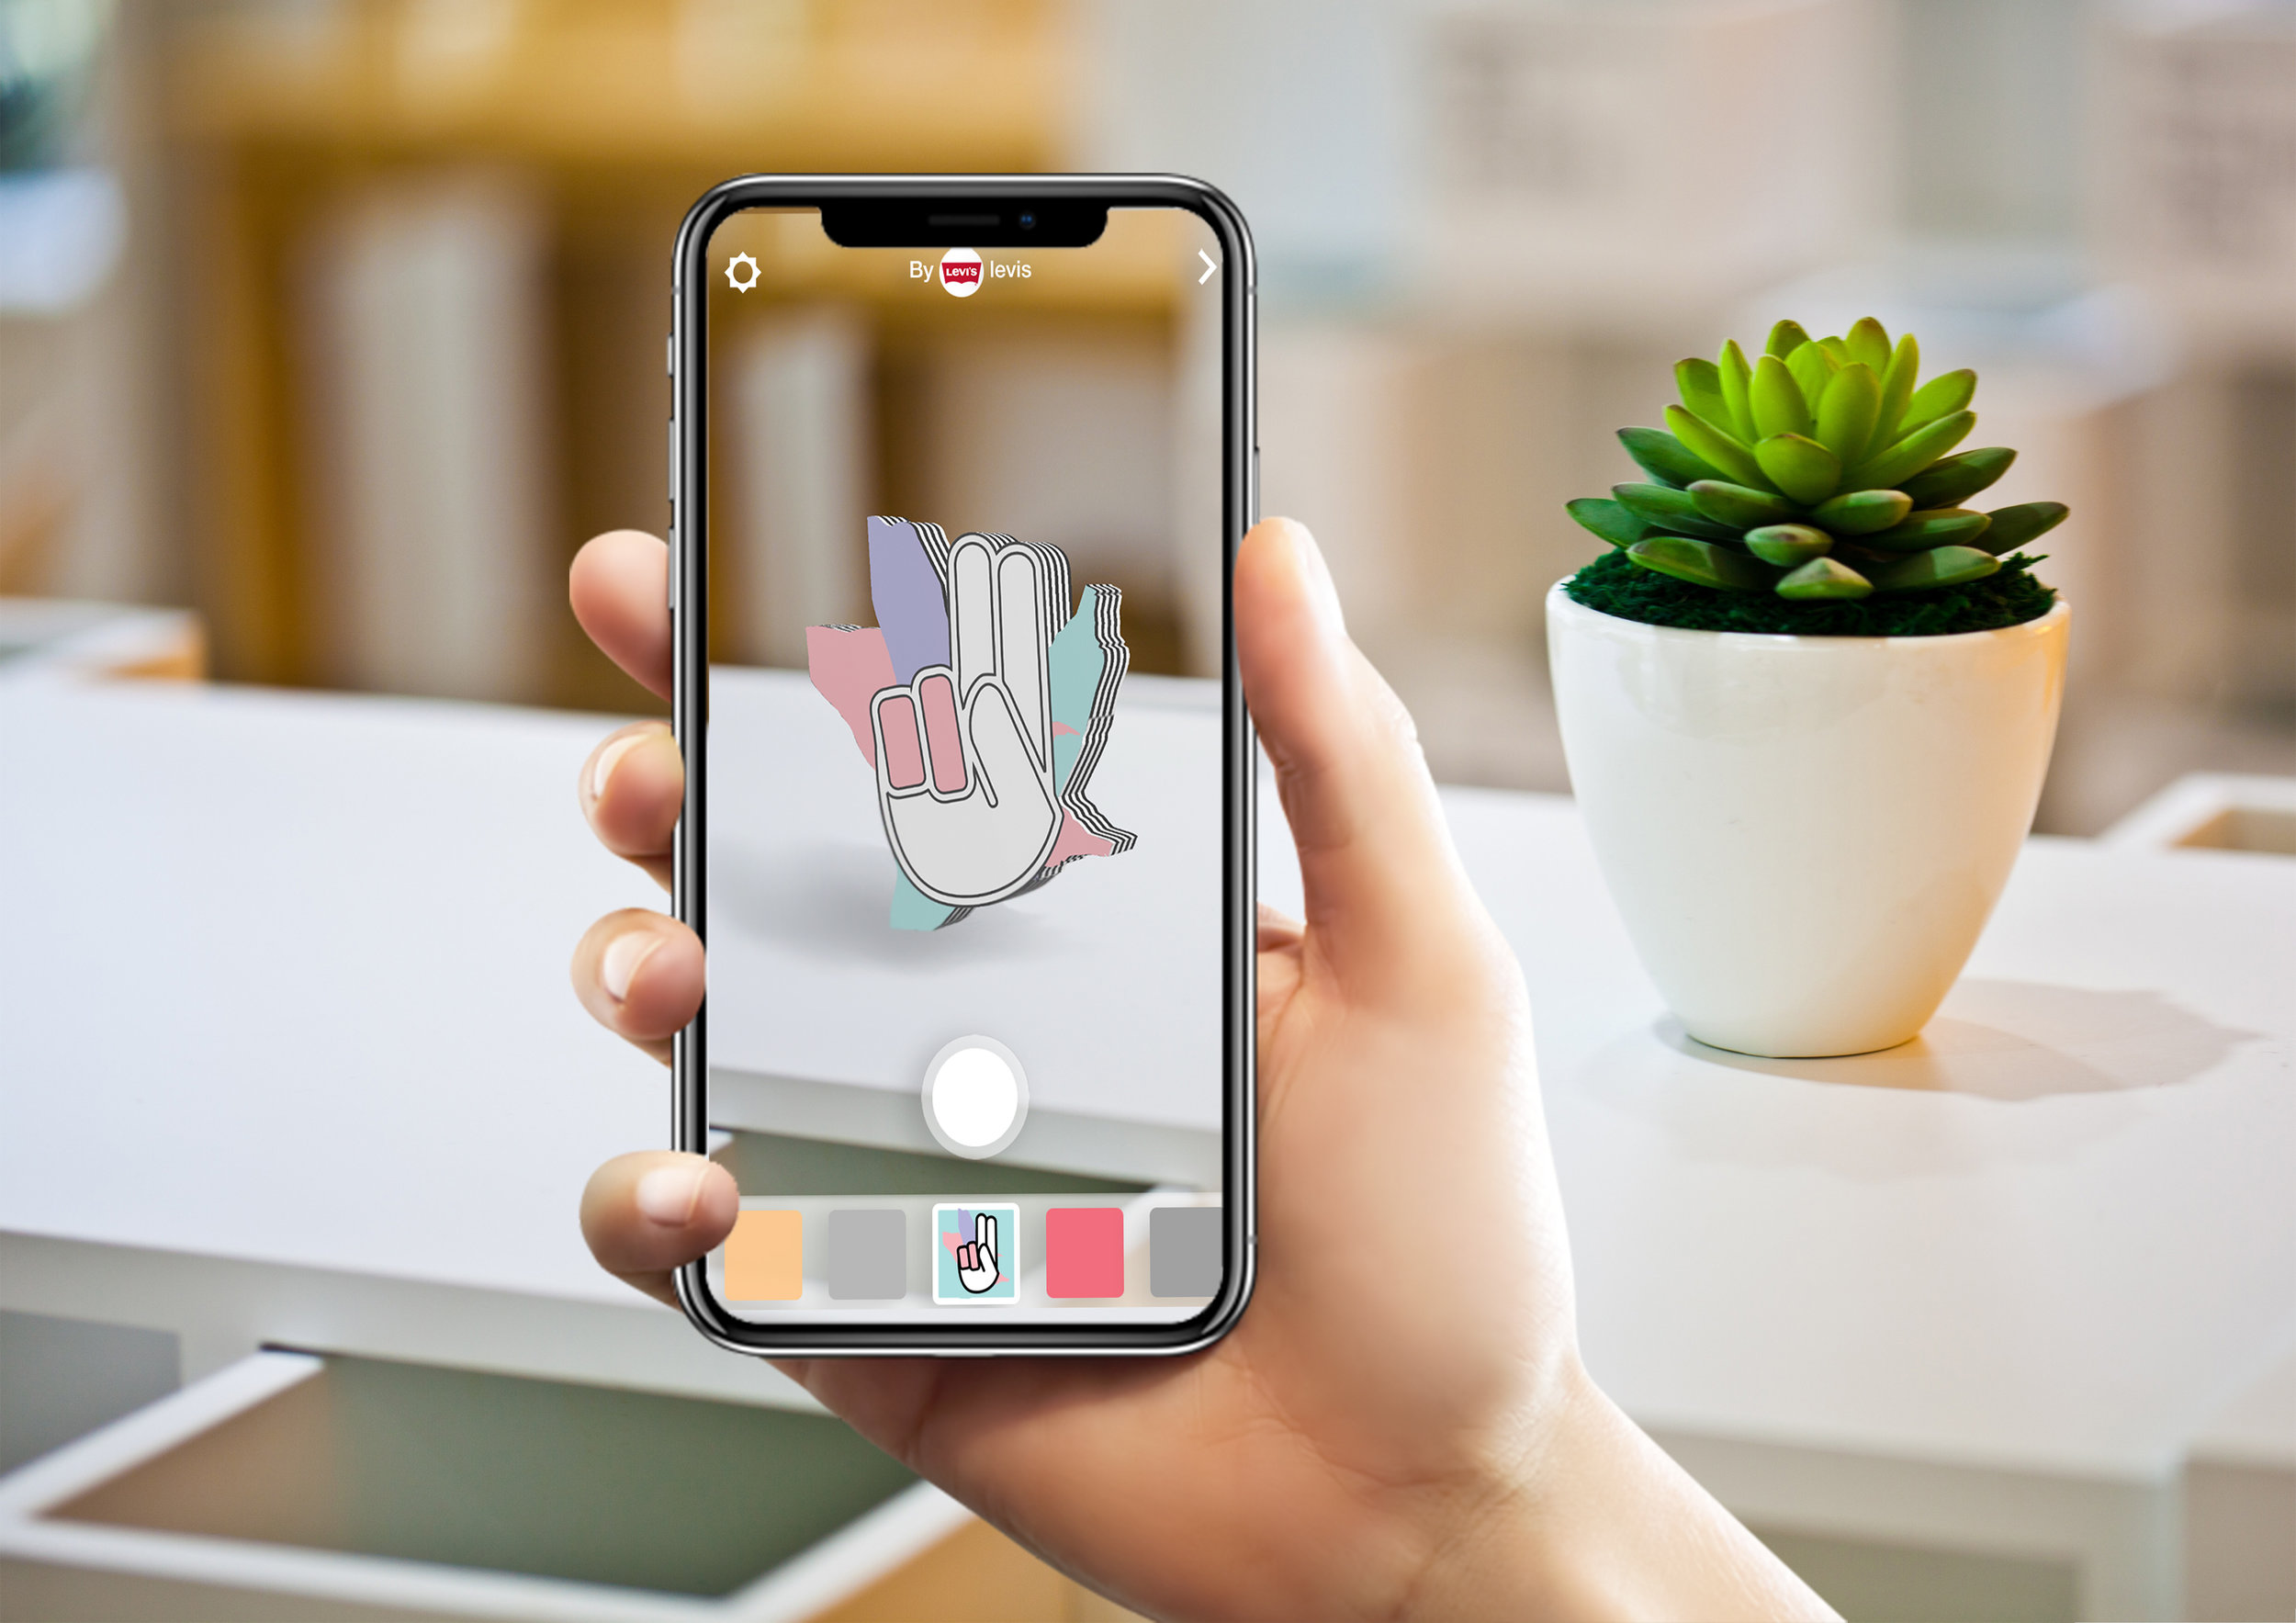 Step #2:Going National - The day after Pride, Levi's premieres a US-wide Instagram AR filter using object recognition. Hovering over everyday items, users can learn and explore the ASL signs in an immersive way.